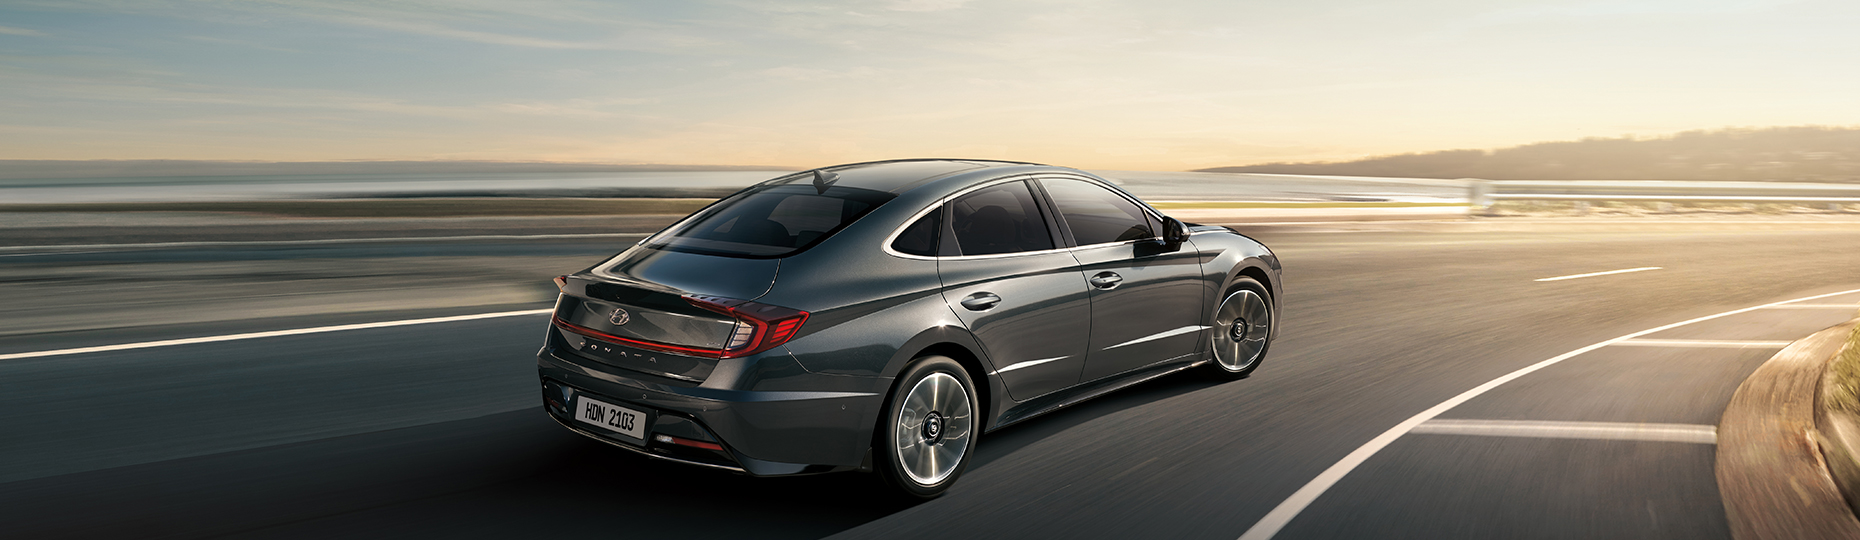 The all-new SONATA